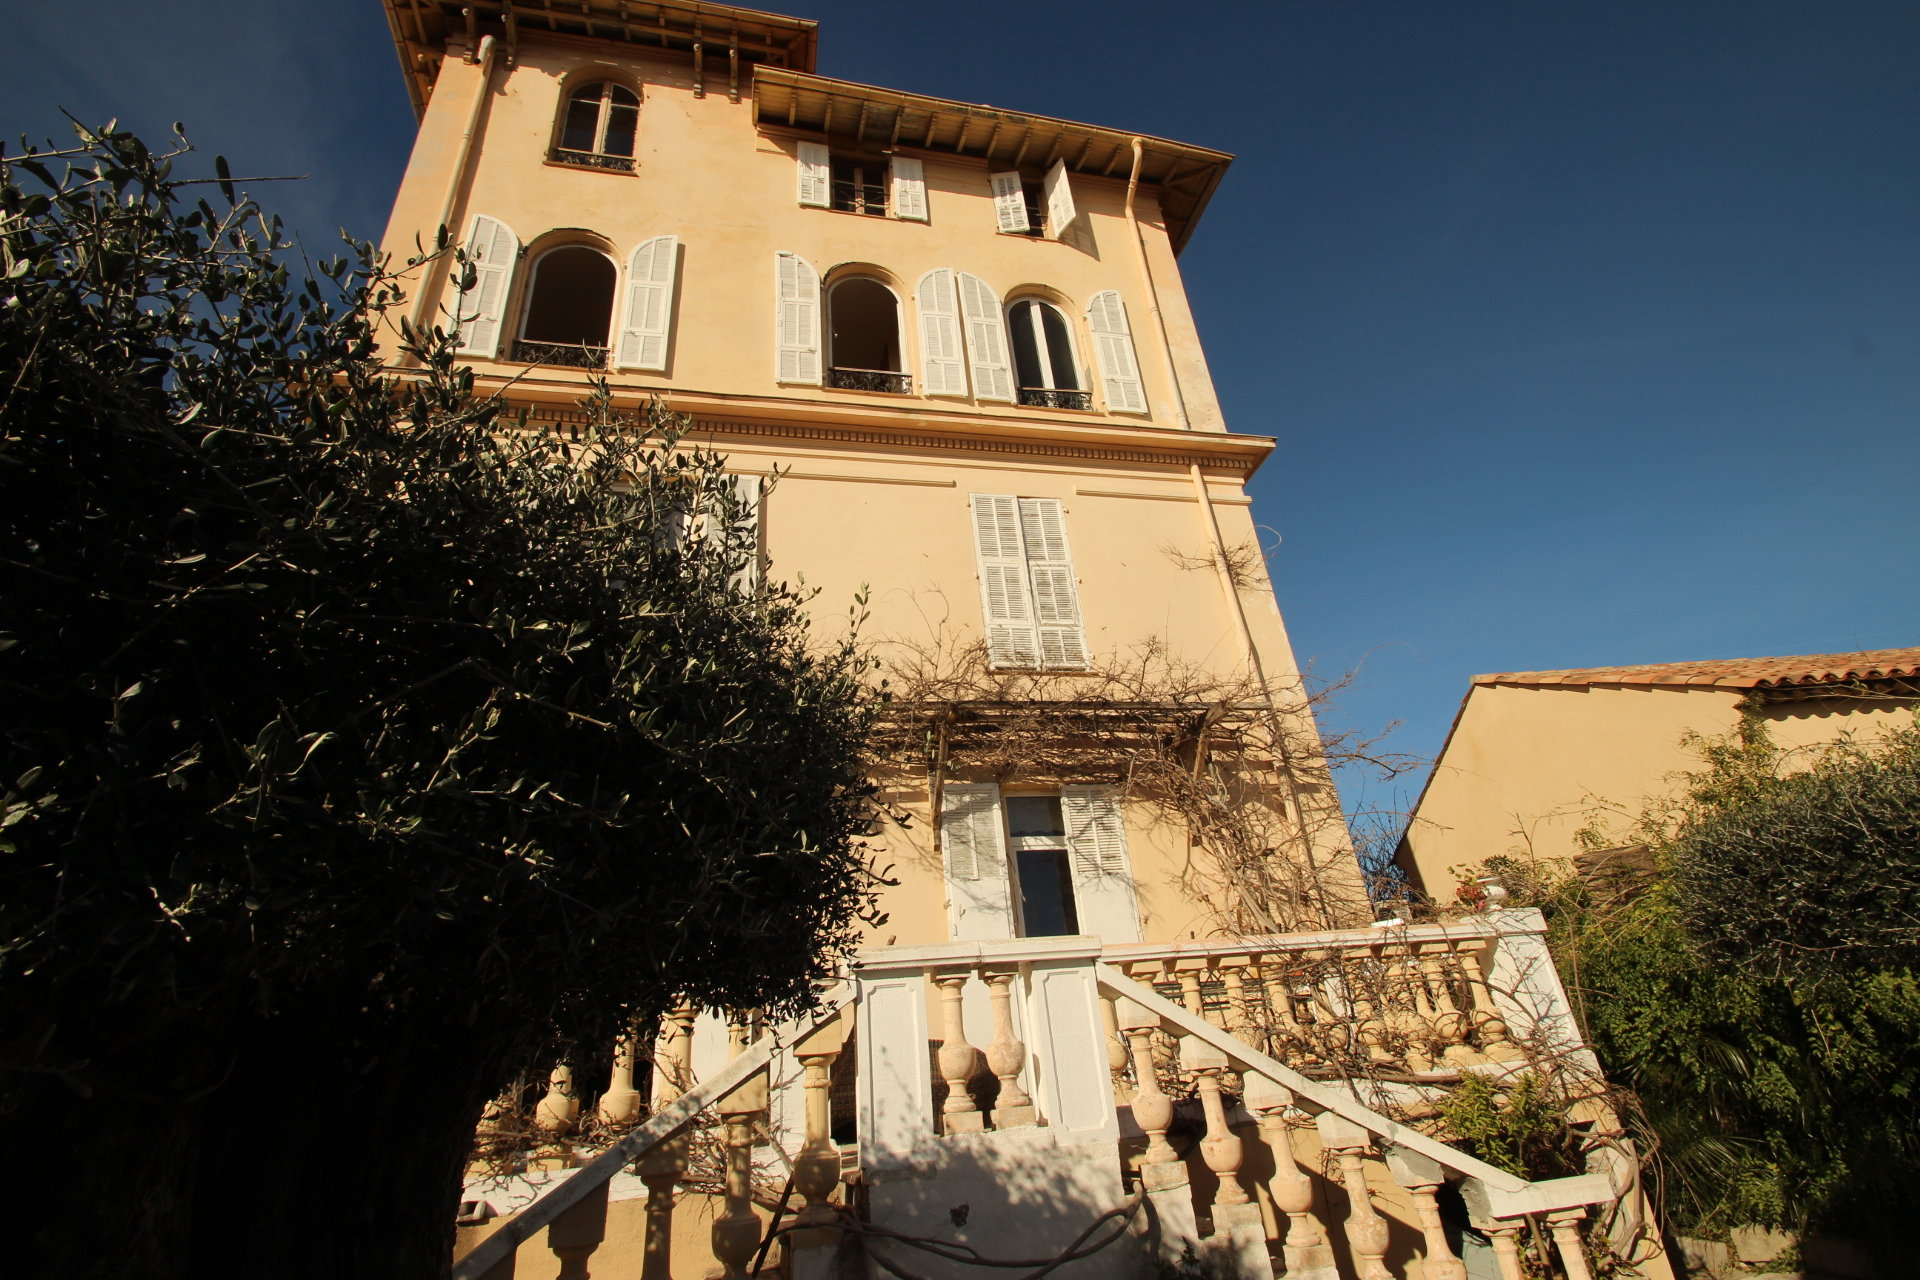 PRIVATE HOTEL 19th CENTURY WITHIN A PRIVATE PROPERTY WITH SPLENDID SEA VIEW